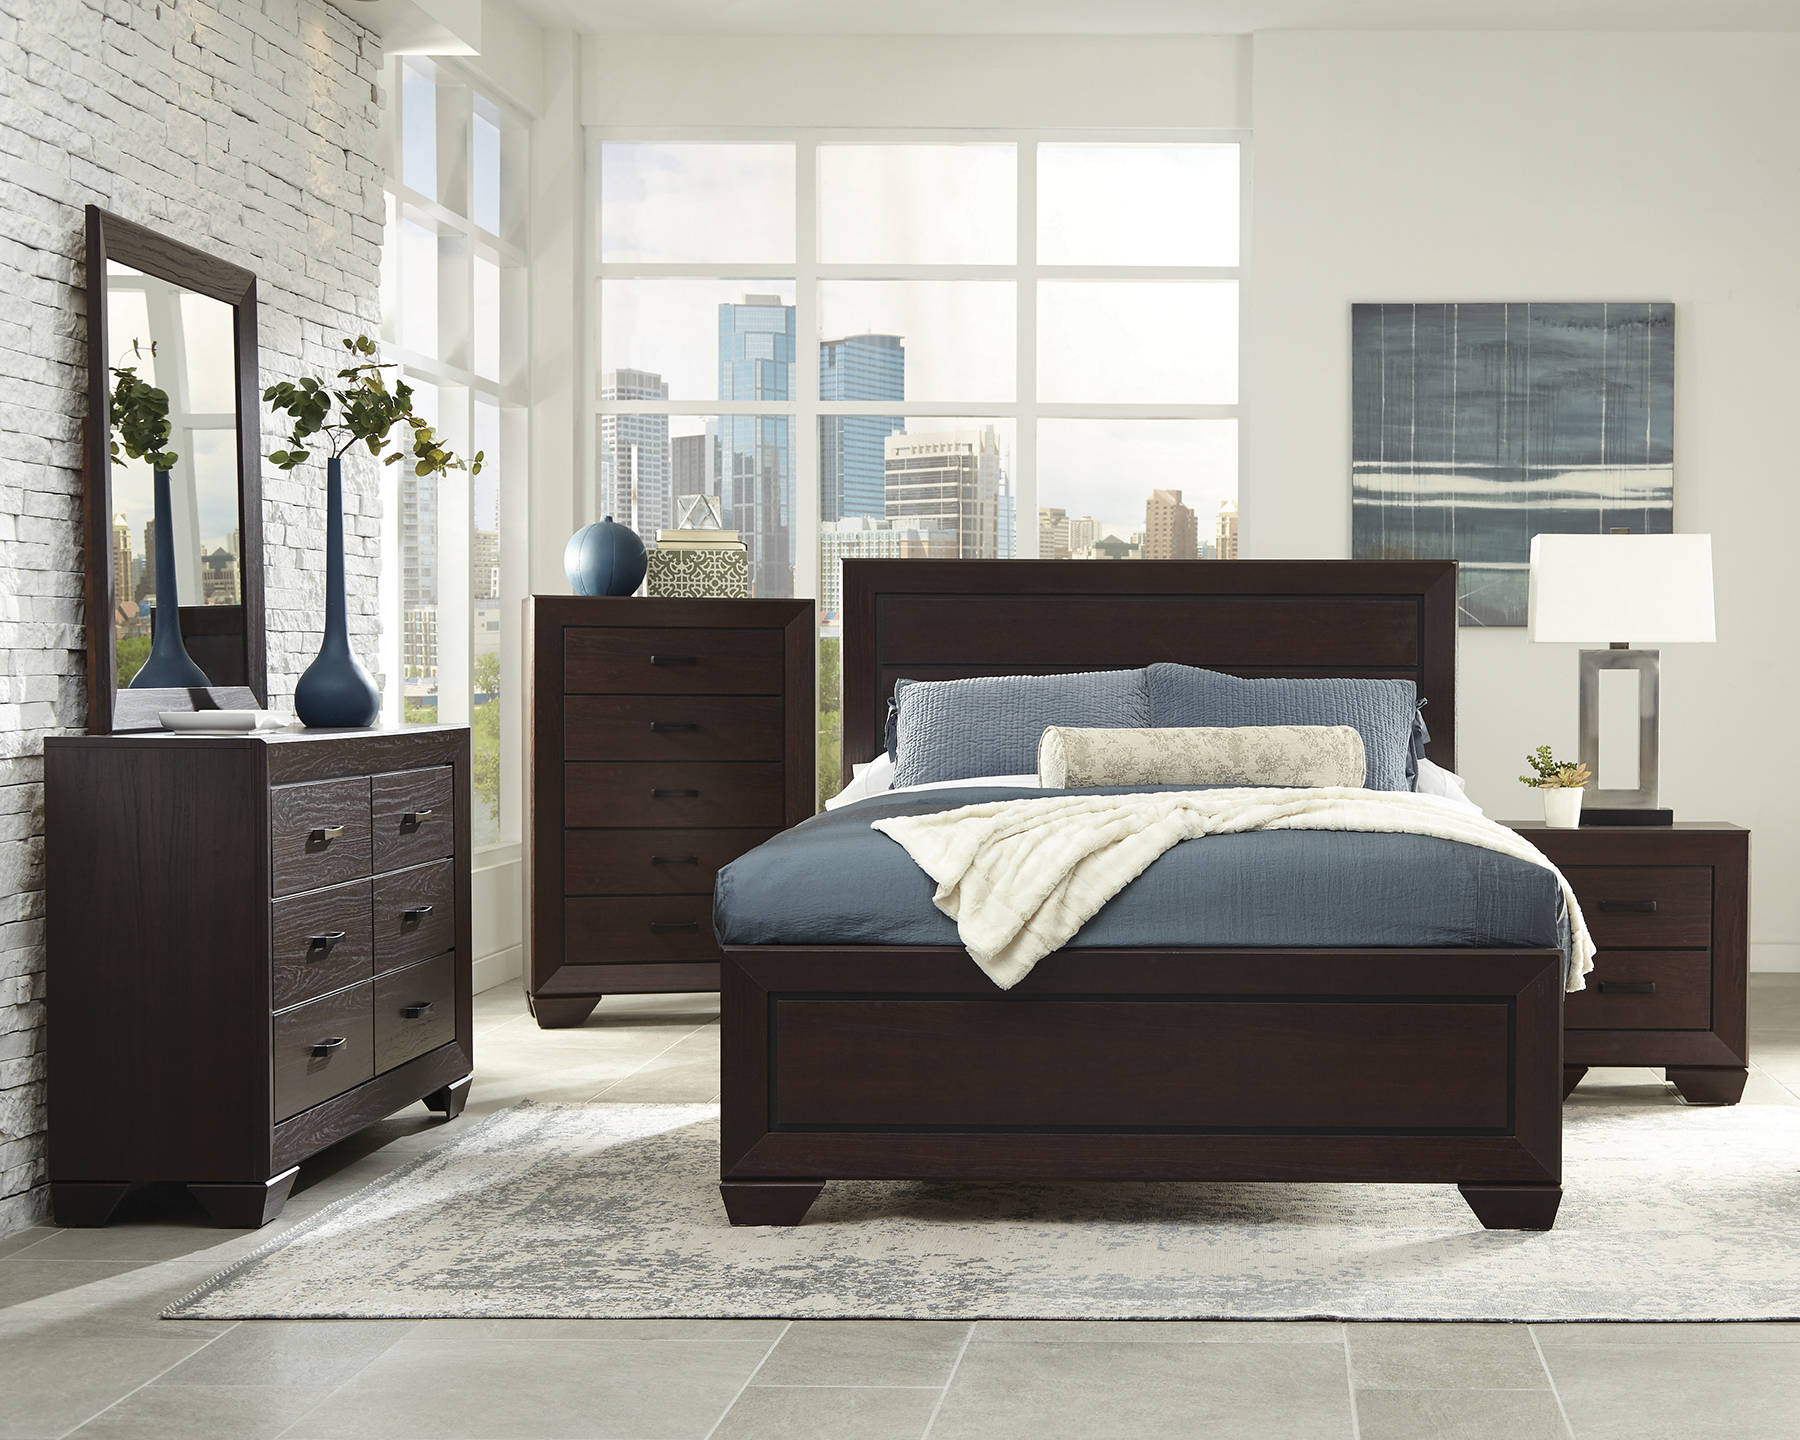 fenbrook transitional dark cocoa wood 2pc bedroom set w/queen bed